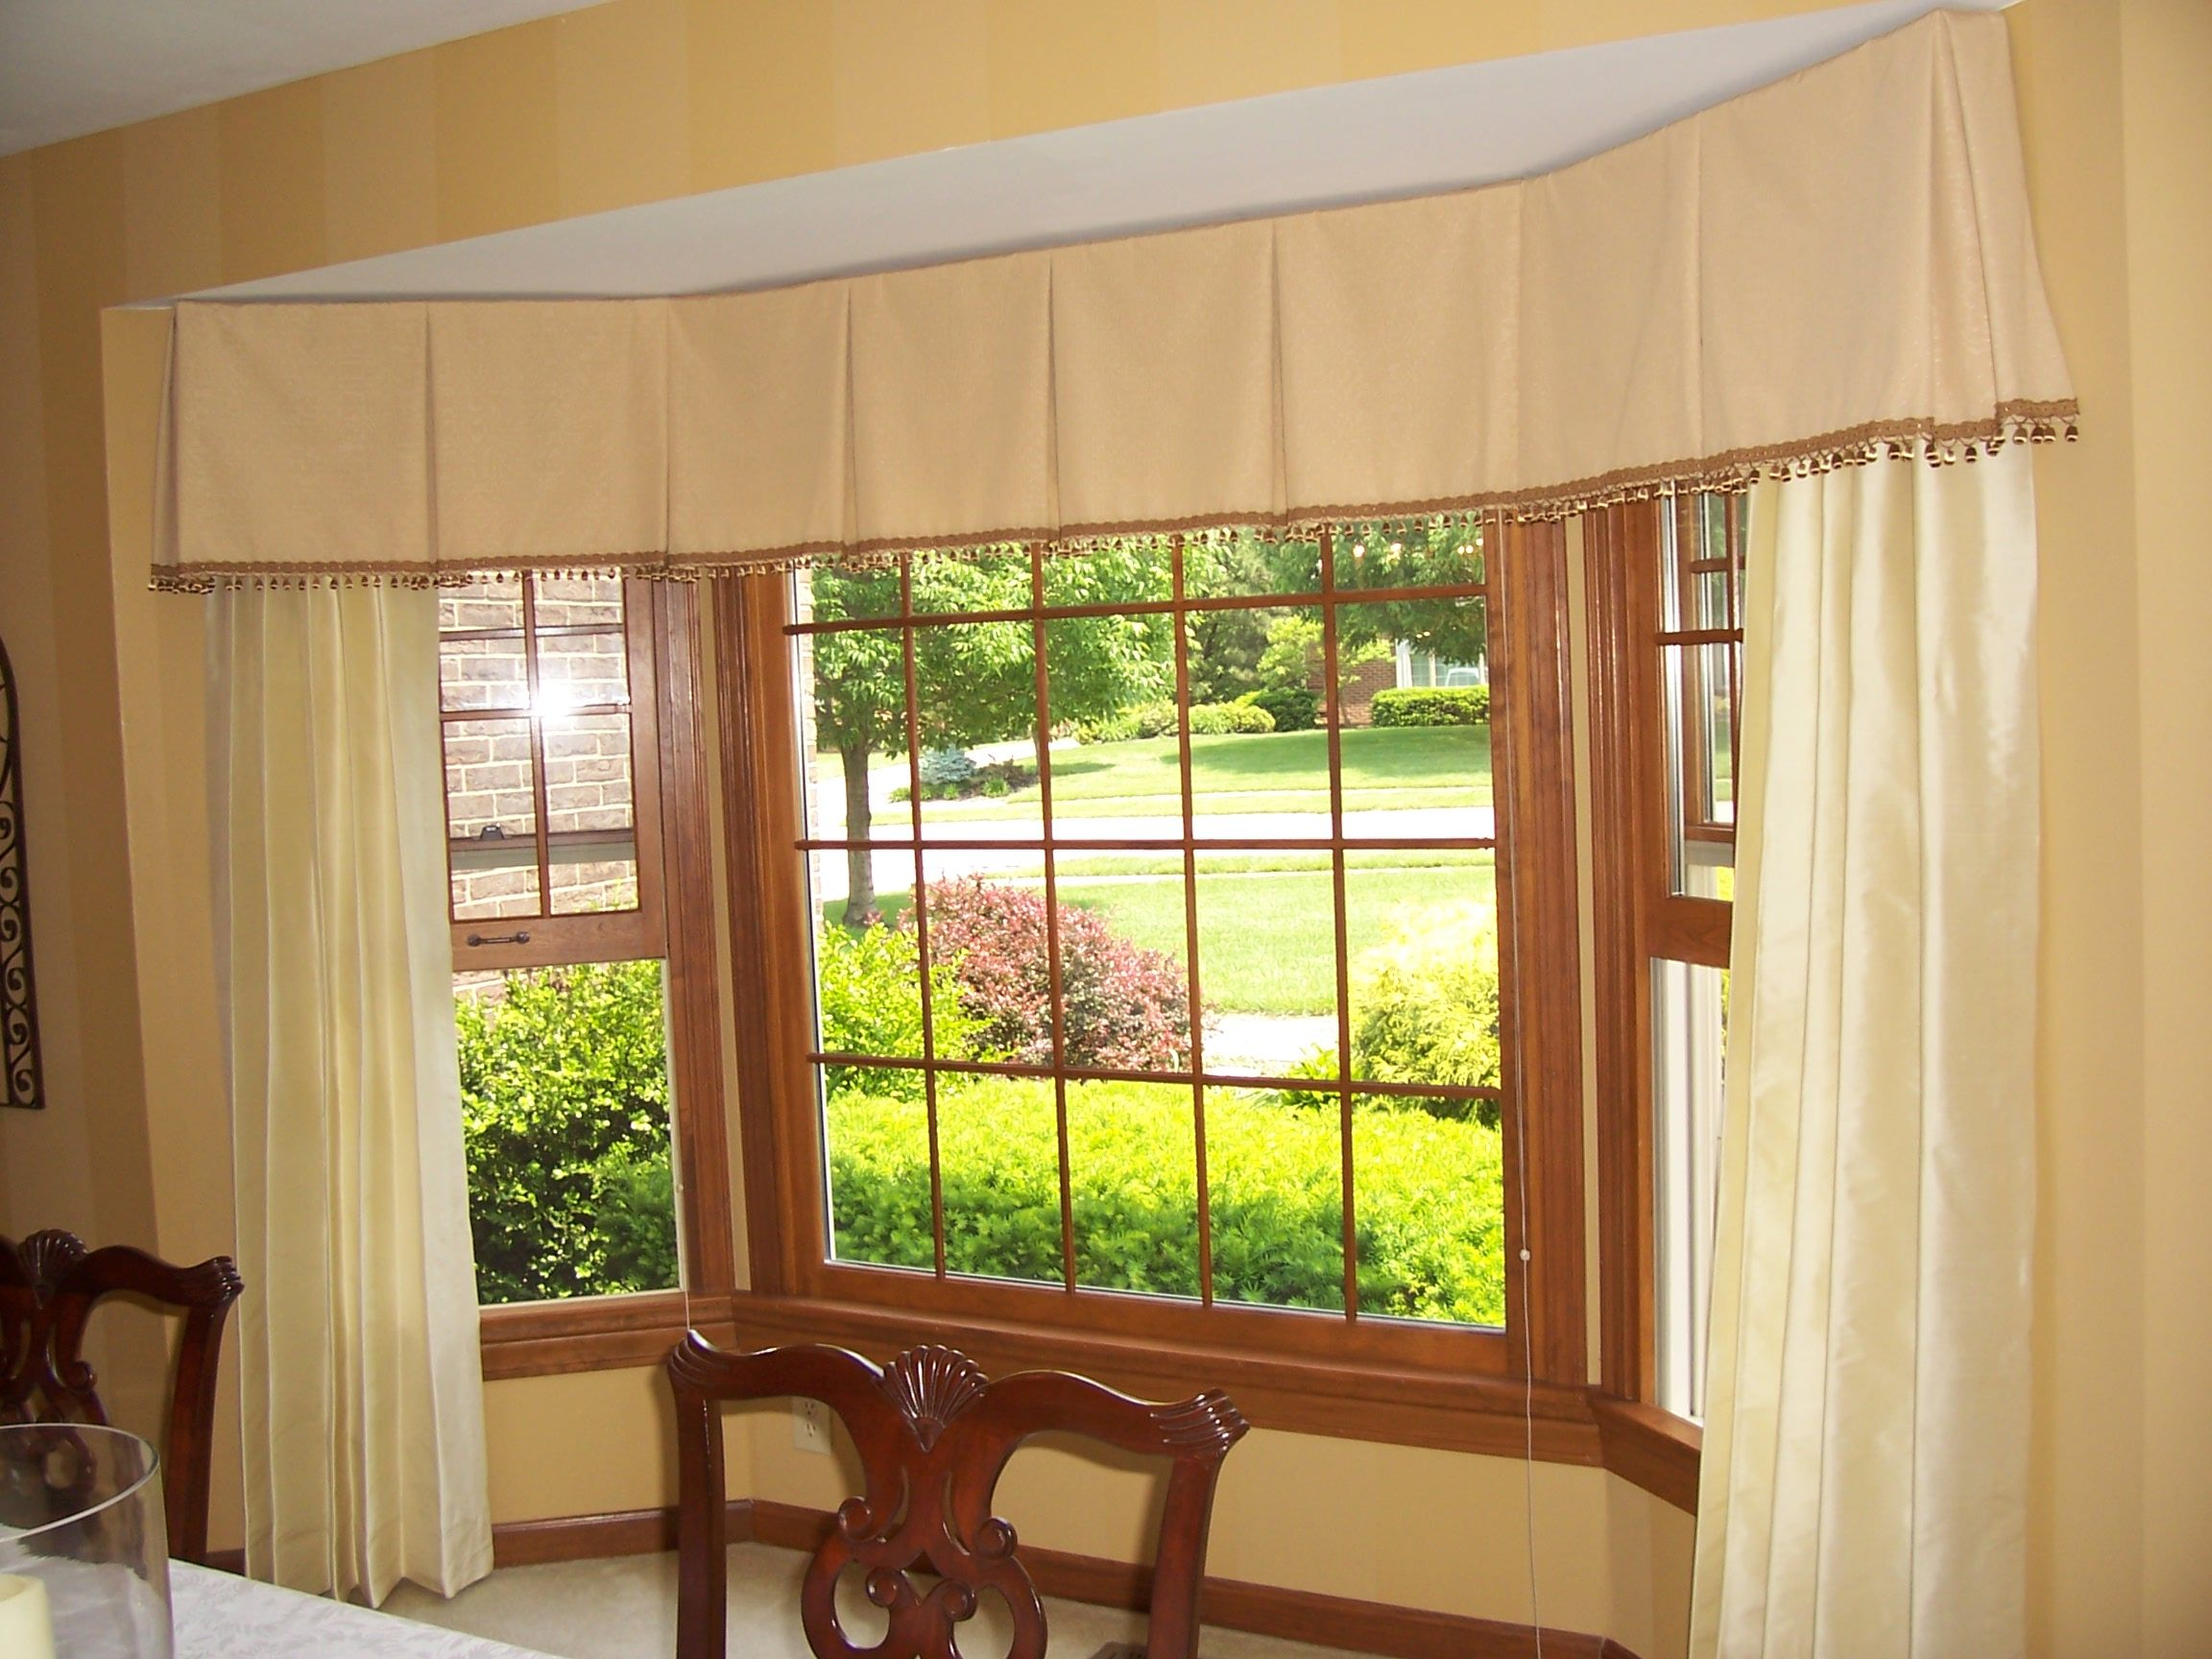 Continuous Box Pleated Valance With Trim At Lower Edge